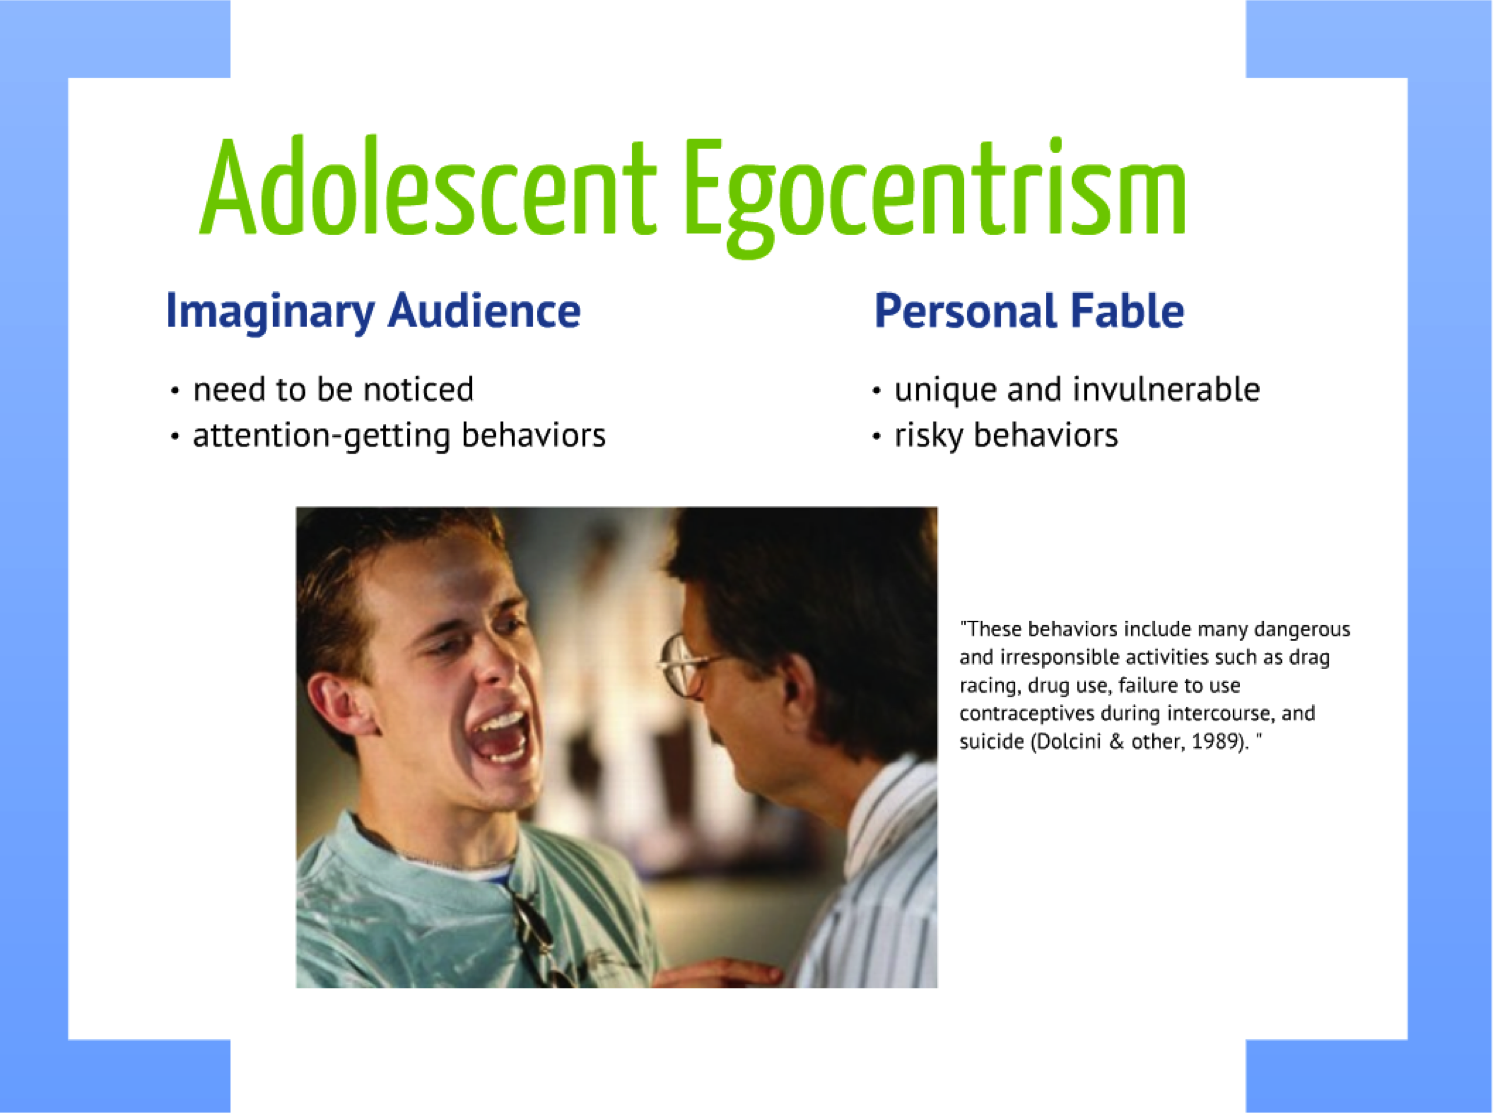 invincibility fable They also lose the personal fable through close relationships that show them their commonalities with others lesson summary egocentrism in adolescence is the tendency for teenagers to focus on themselves.